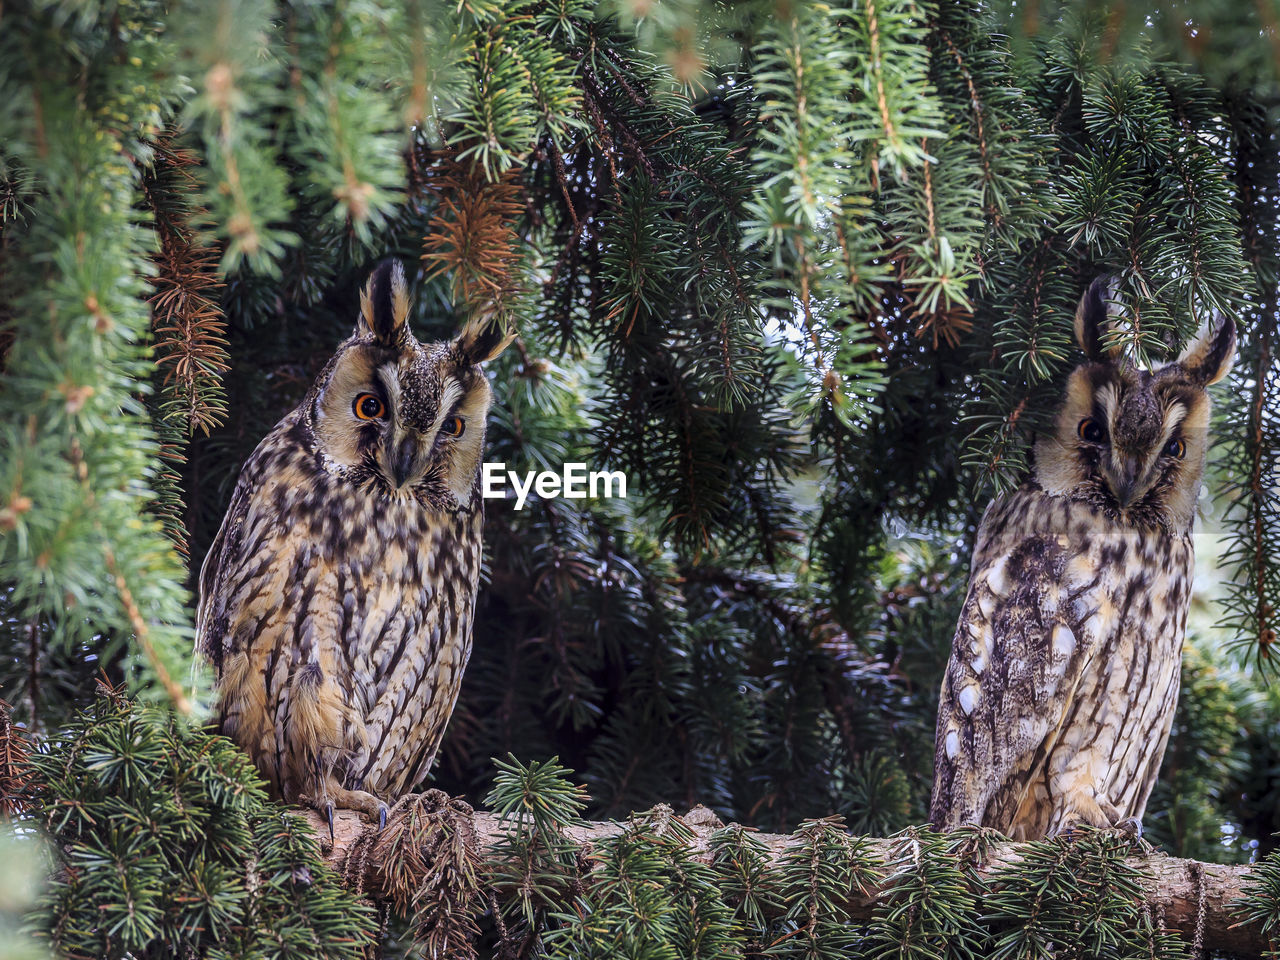 tree, animal themes, plant, animal, vertebrate, animal wildlife, one animal, animals in the wild, bird of prey, no people, nature, owl, bird, day, growth, land, perching, portrait, focus on foreground, looking at camera, outdoors, pine tree, coniferous tree